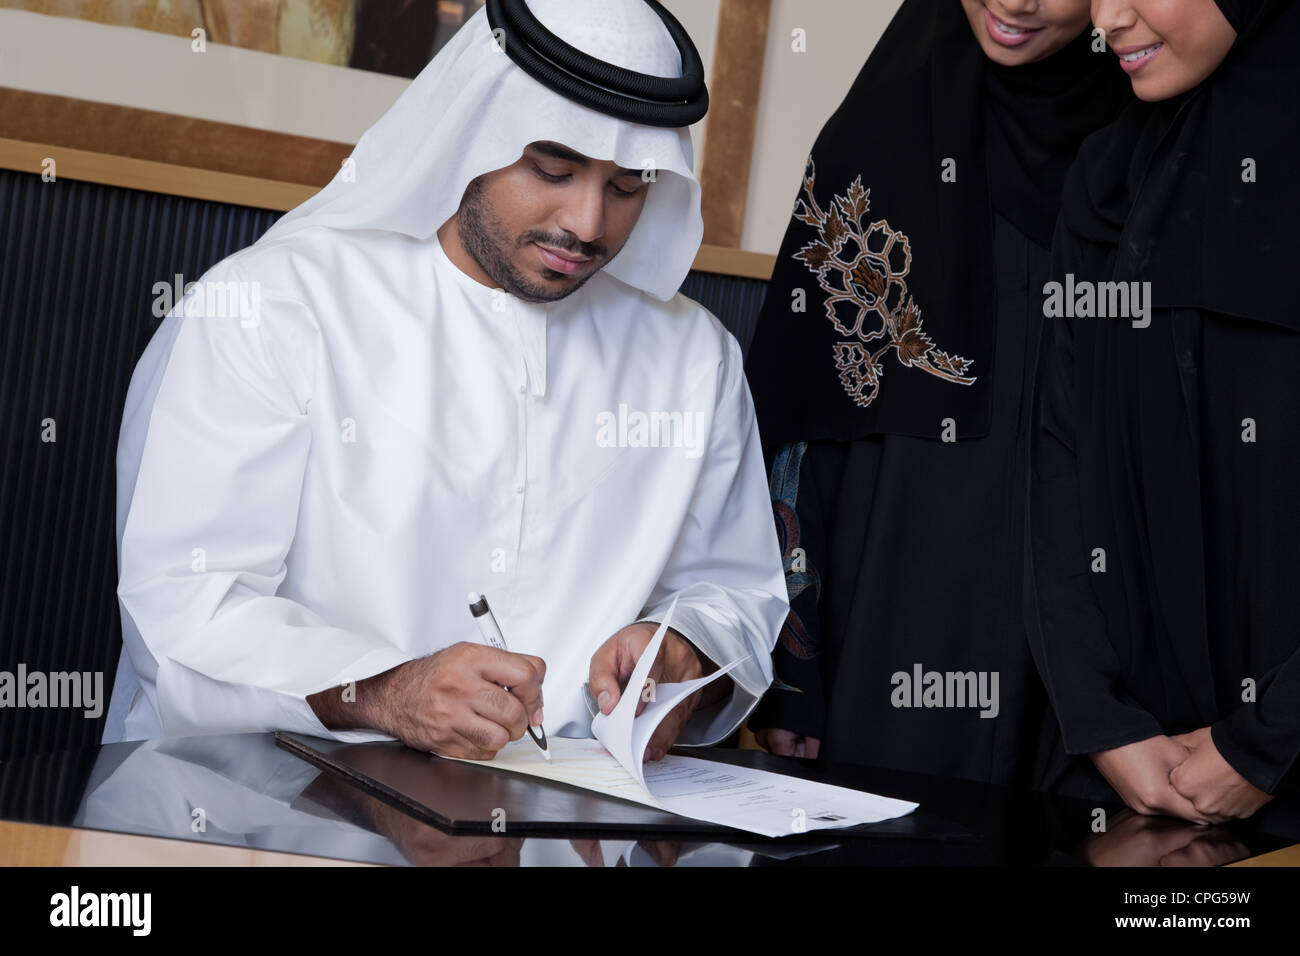 Arab businessman signing a document, businesswomen standing on the side. - Stock Image